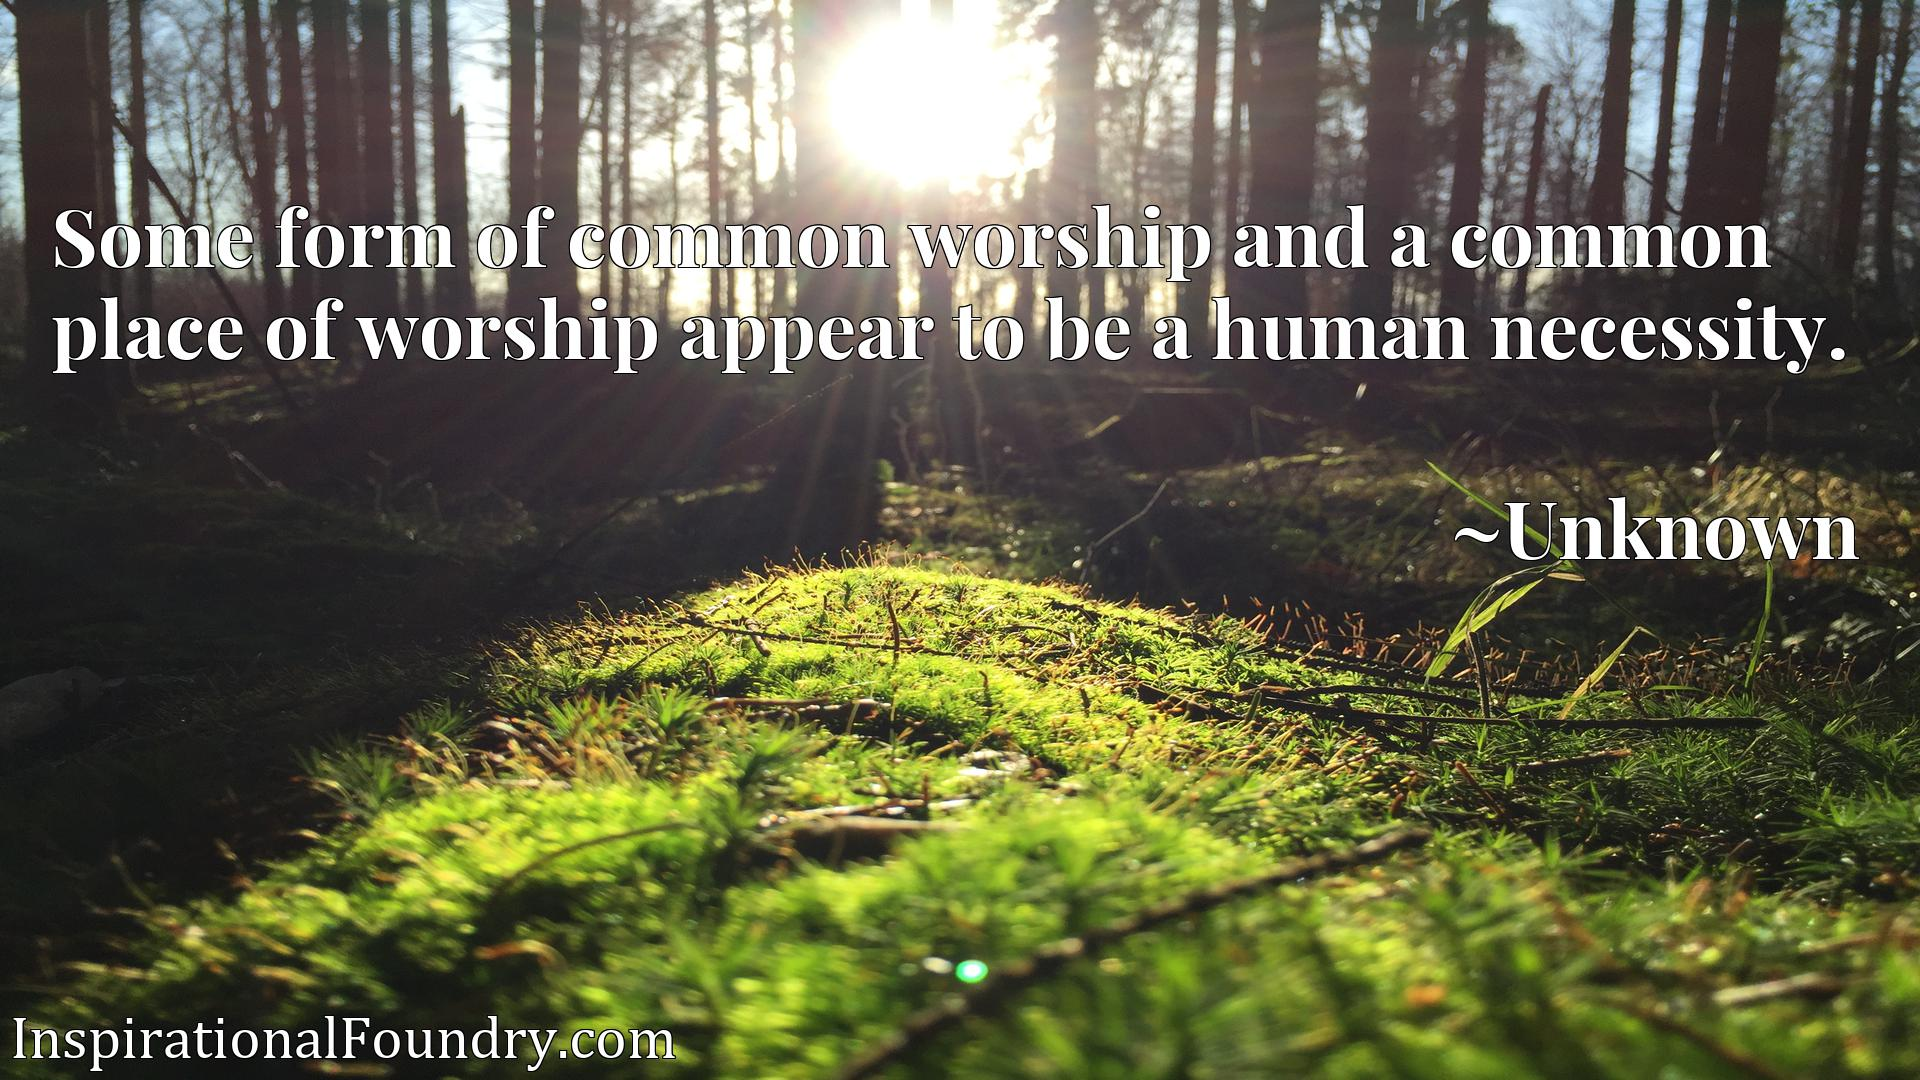 Some form of common worship and a common place of worship appear to be a human necessity.